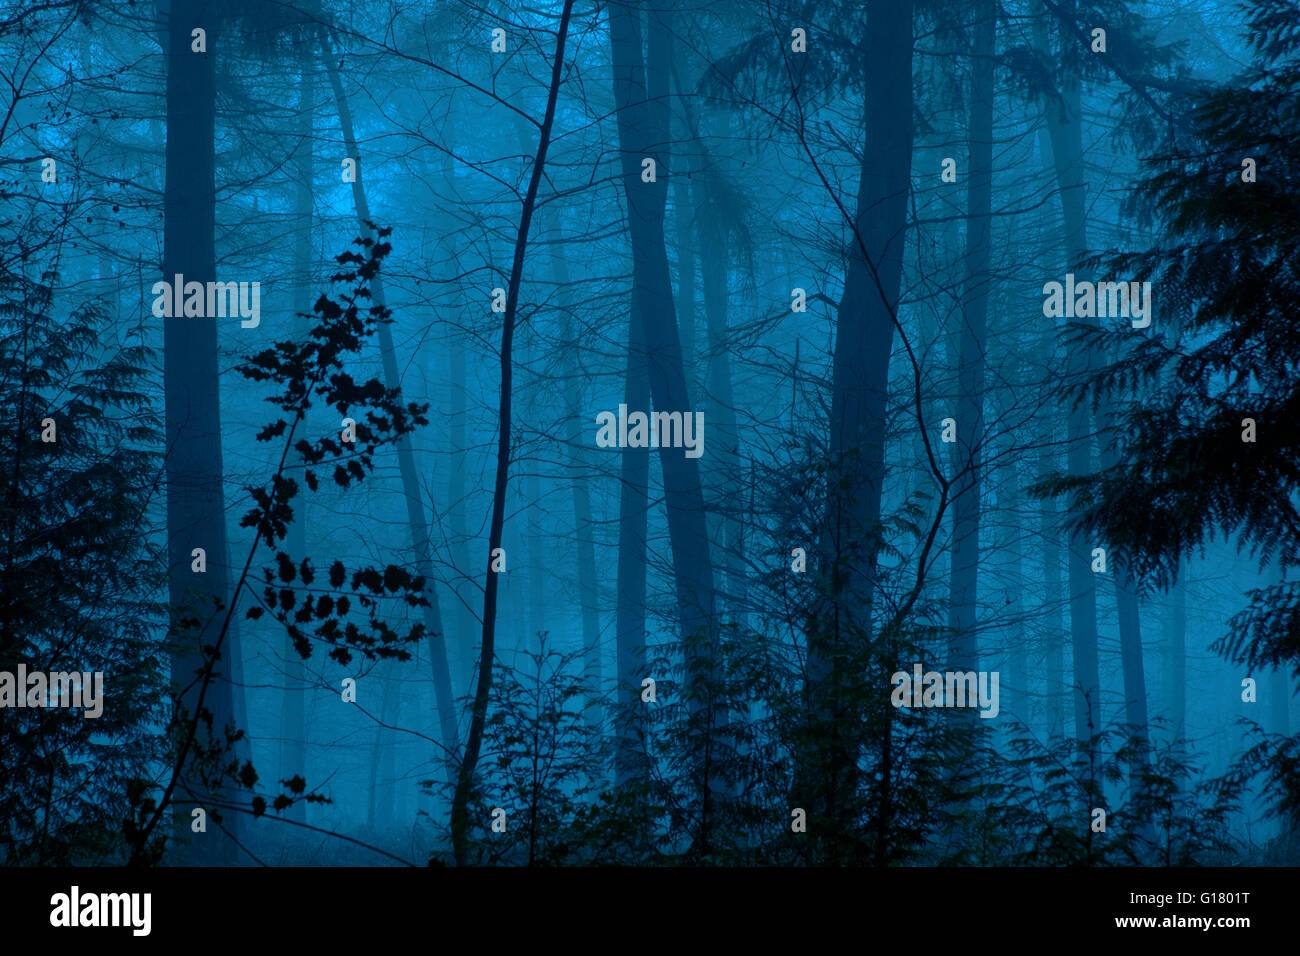 Mist and darkness closing in on conifer woodland - Stock Image